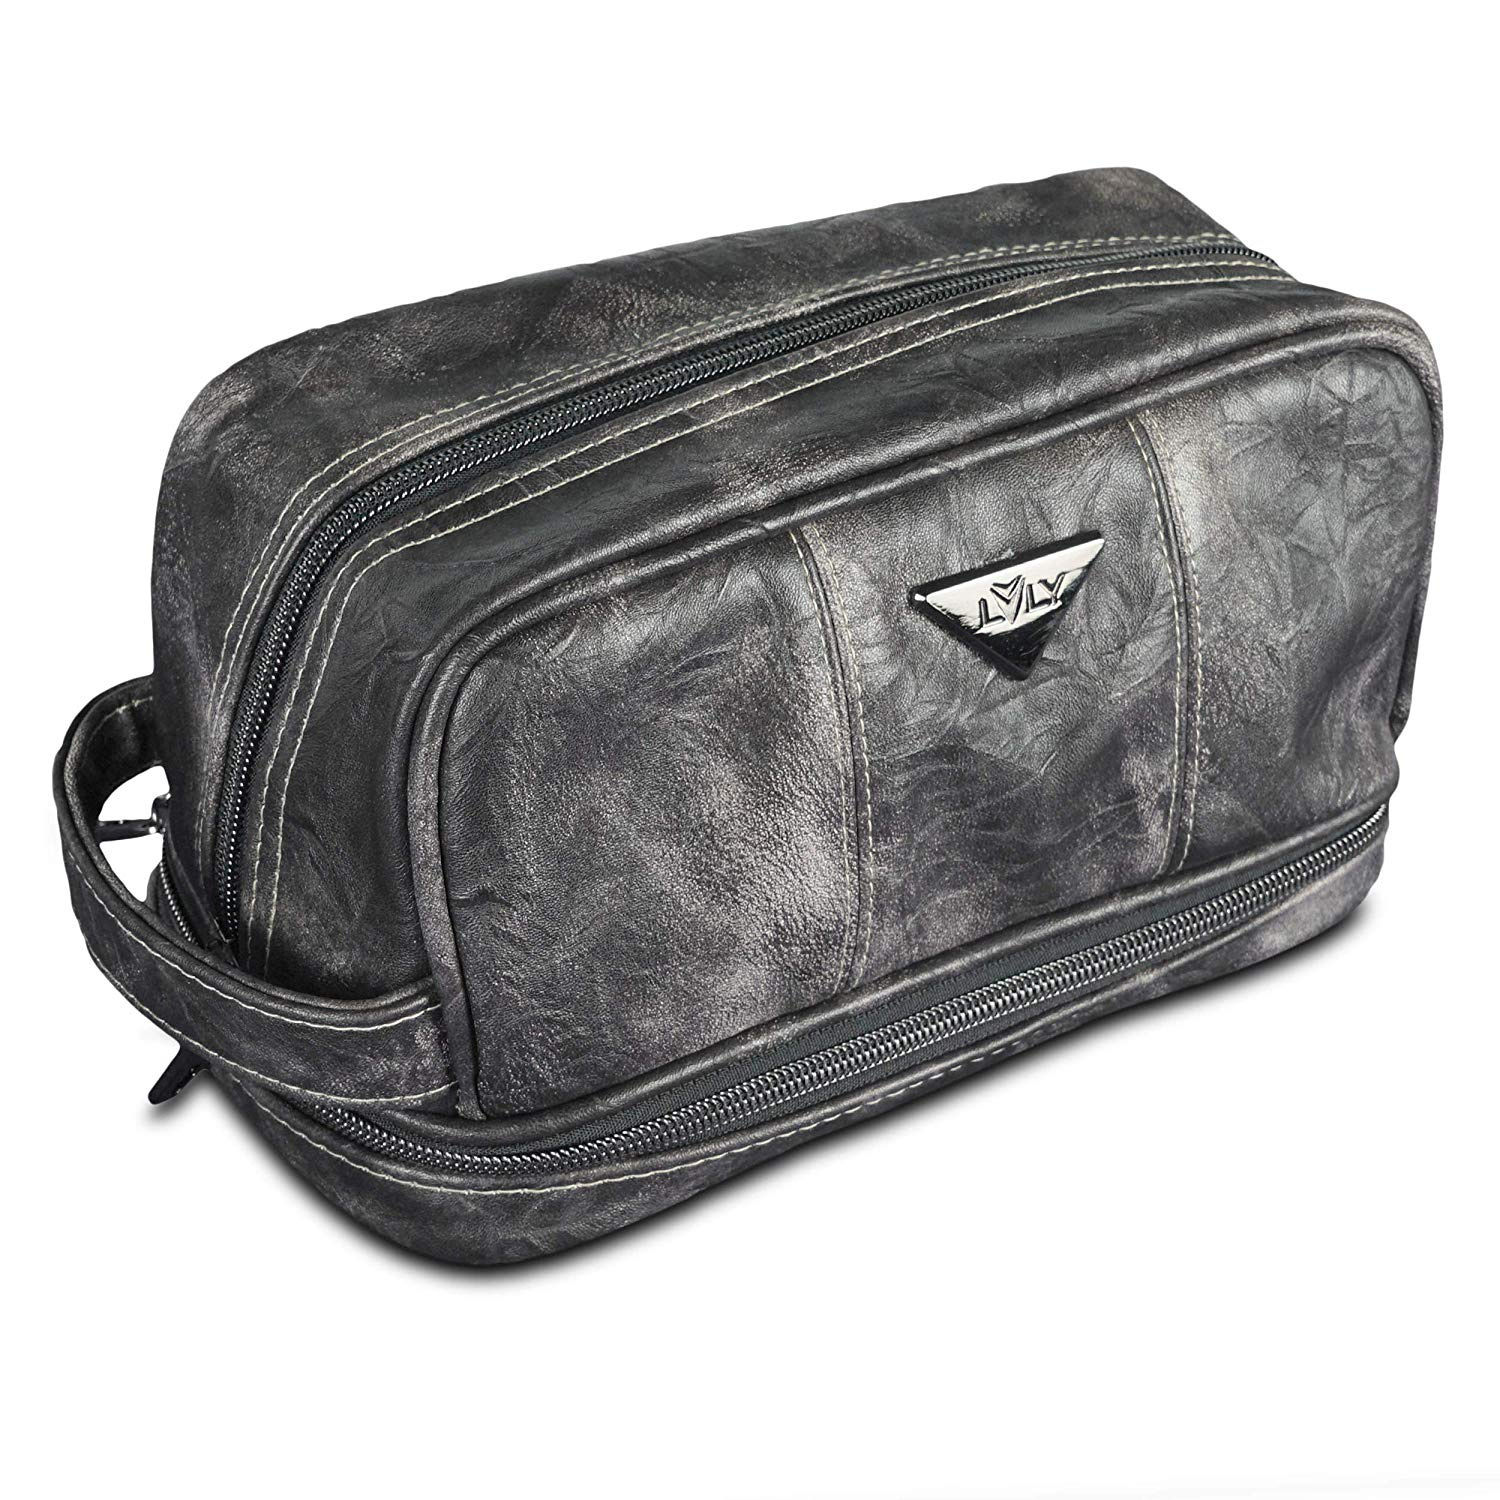 6bde2c84757e Leather Toiletry Bag for Men - Dopp Kit for Mens Toiletries by LVLY ...